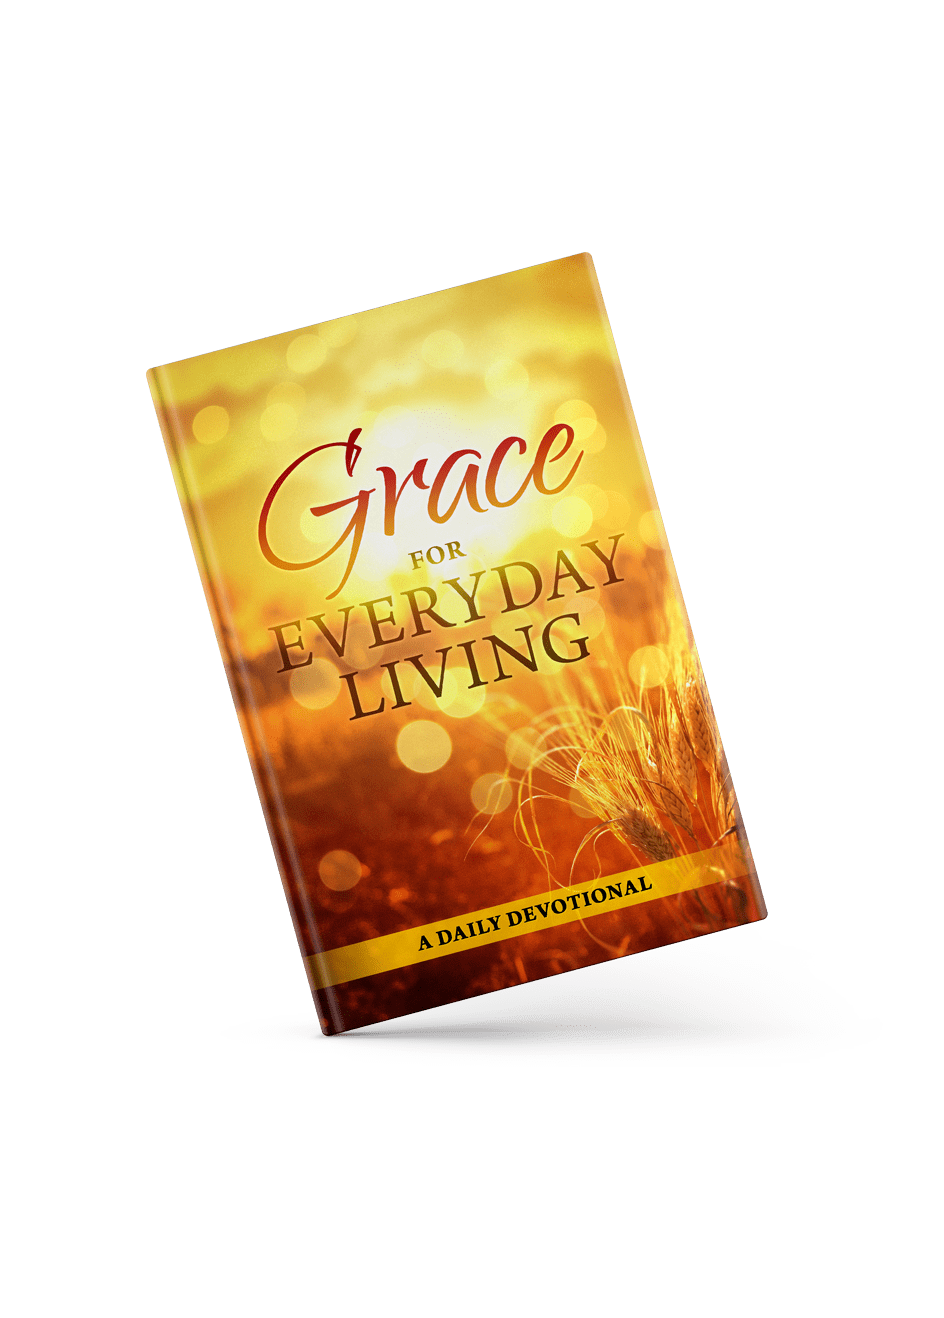 Grace For Everyday Living Book Cover angle view